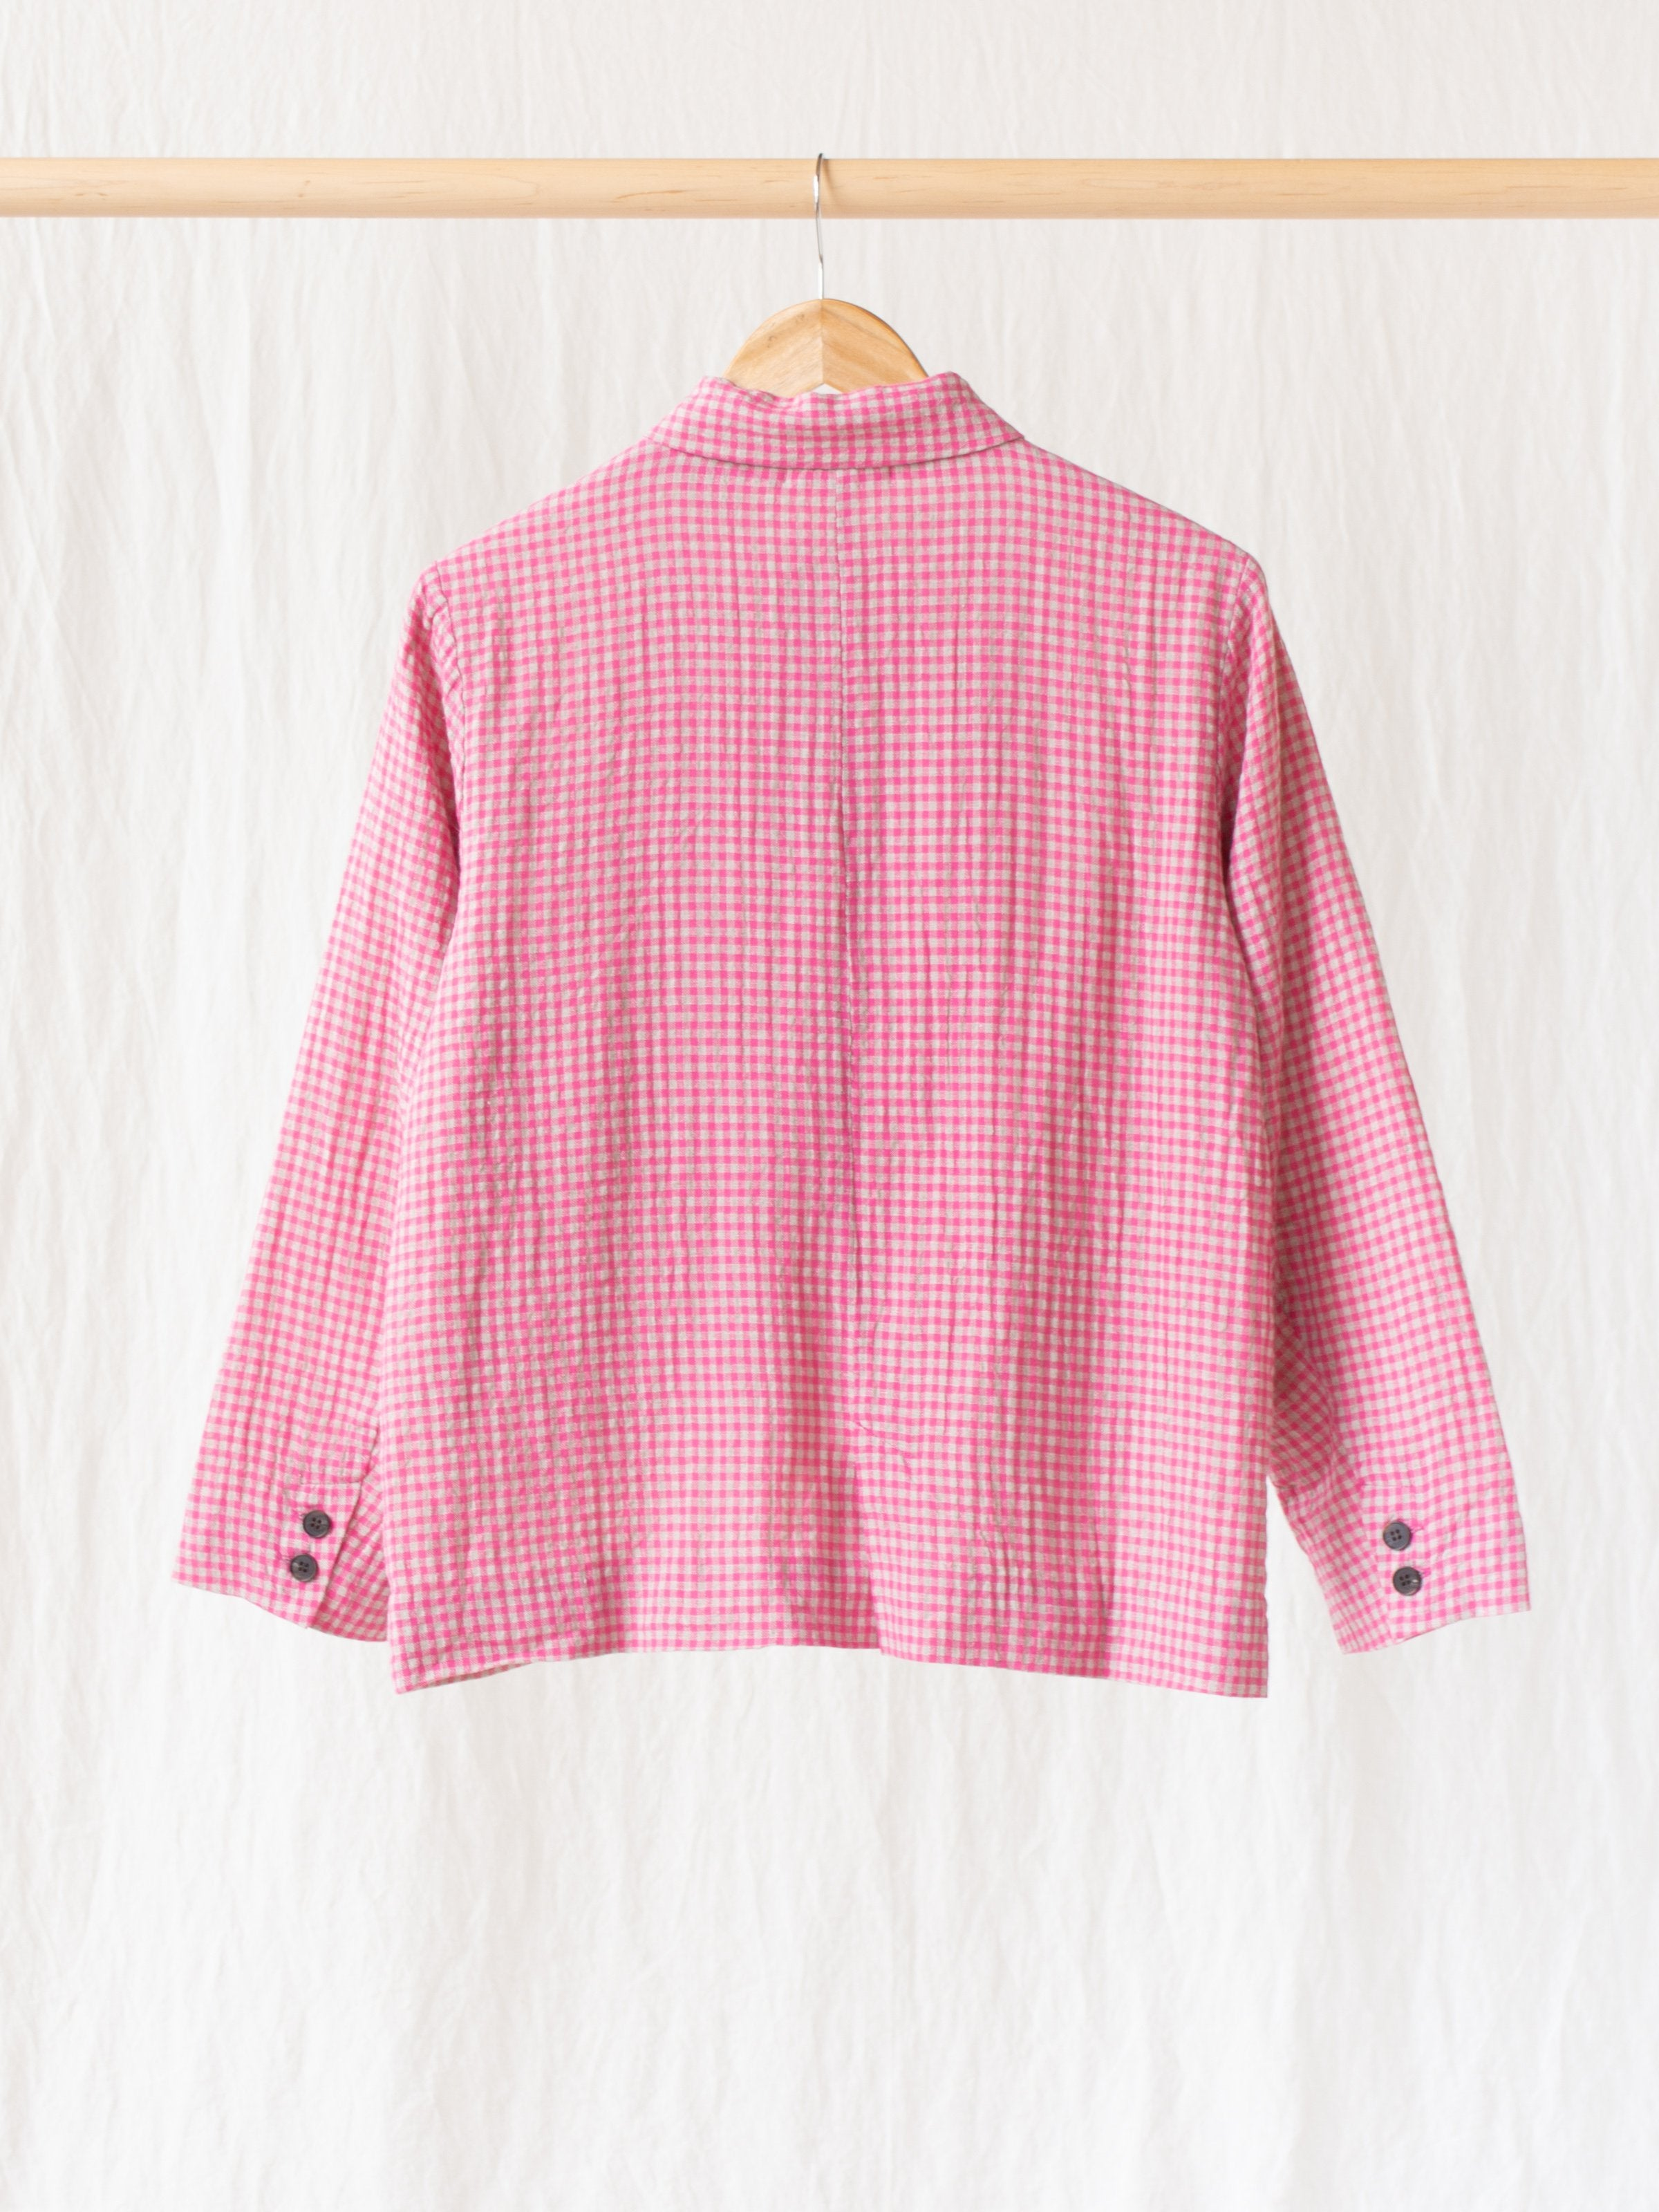 Namu Shop - Ichi Antiquites Co/Li Gingham Jacket - Pink